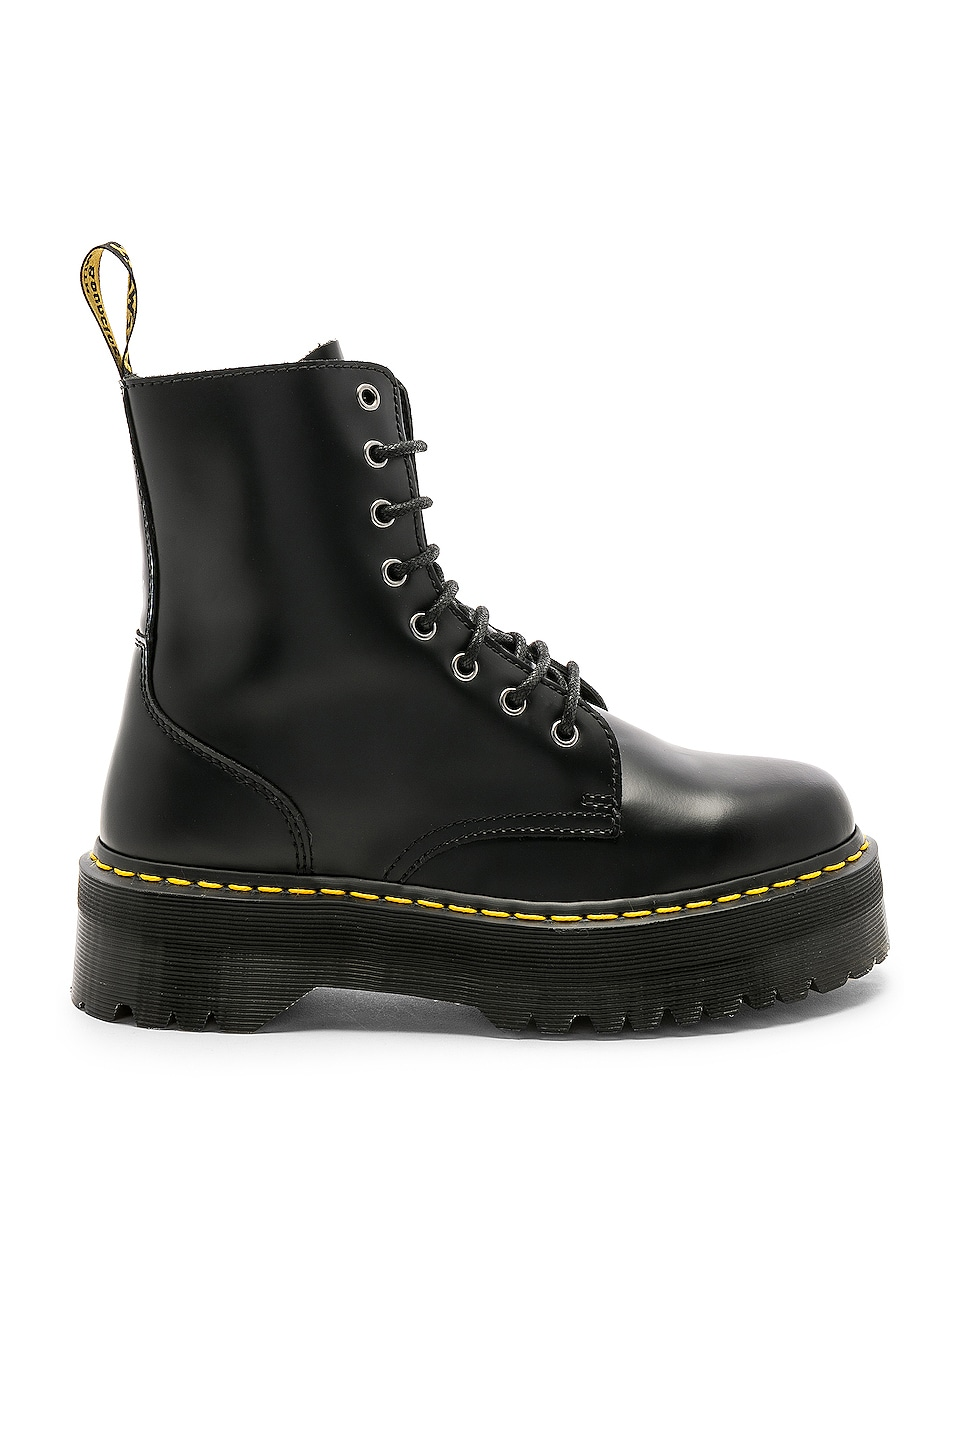 Dr. Martens Jadon Fusion Smooth Boot in Black